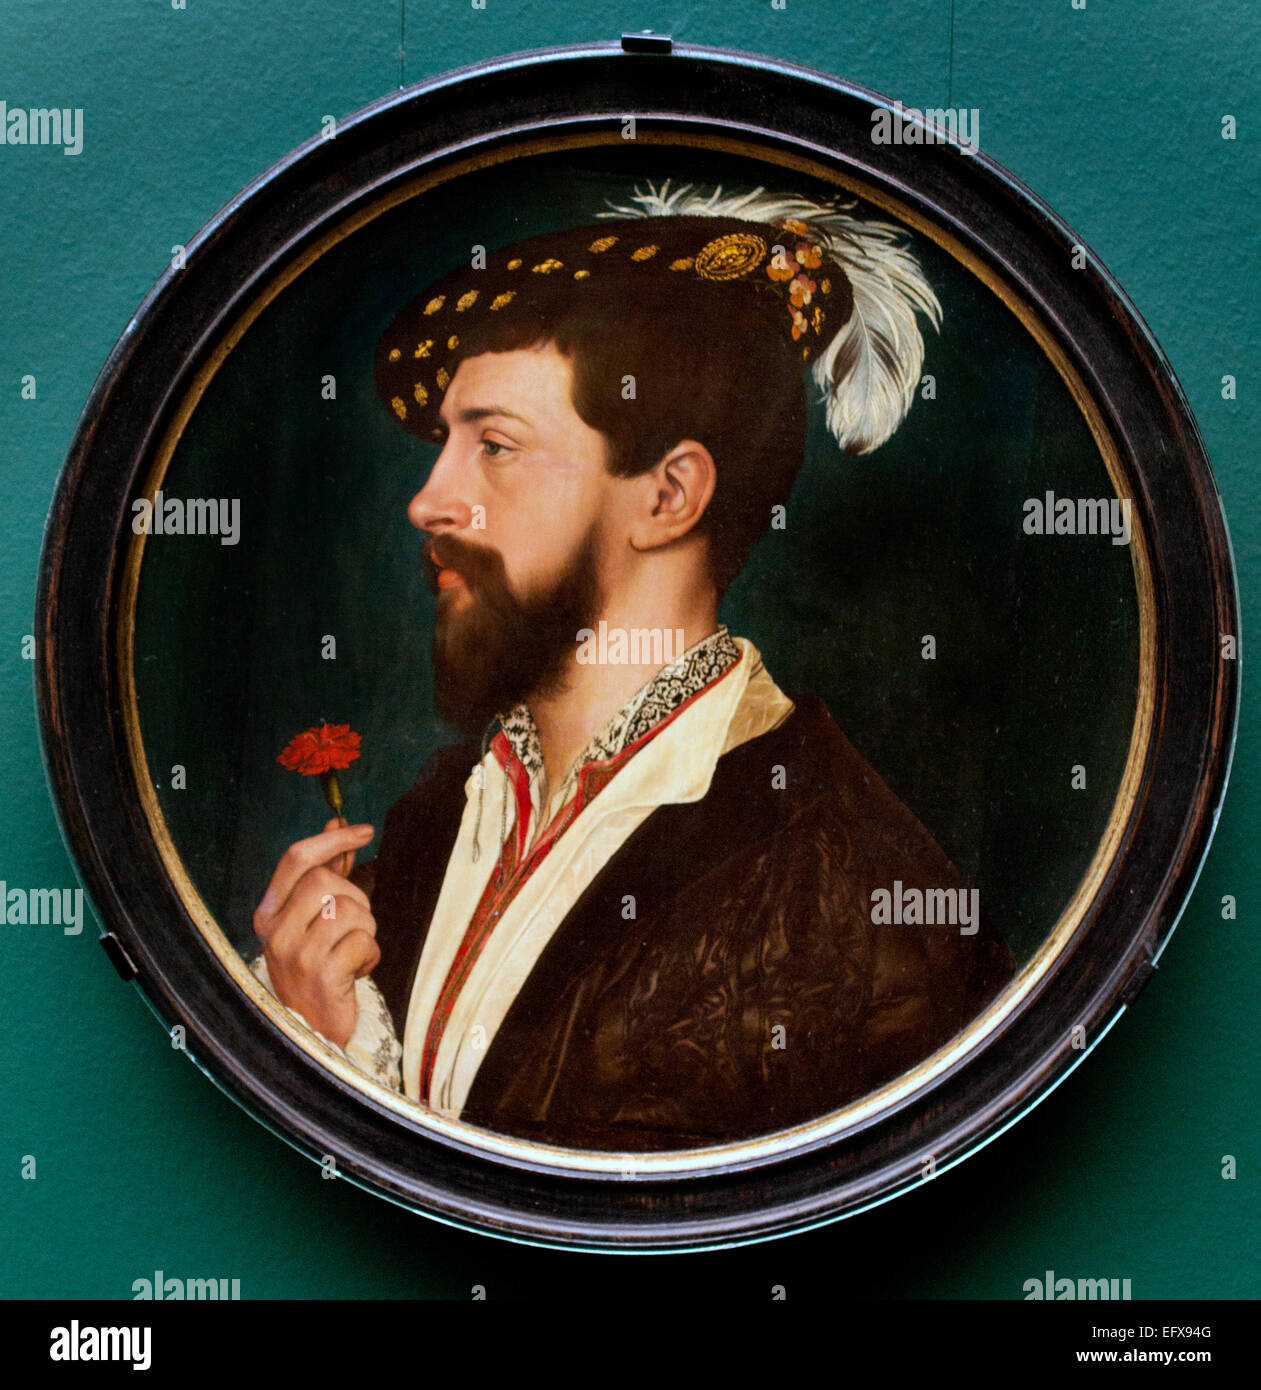 PORTRAIT OF SIMON GEORGE OF CORNWALL 1535–40  HANS HOLBEIN THE YOUNGER  1497 - 1543   German Germany - Stock Image